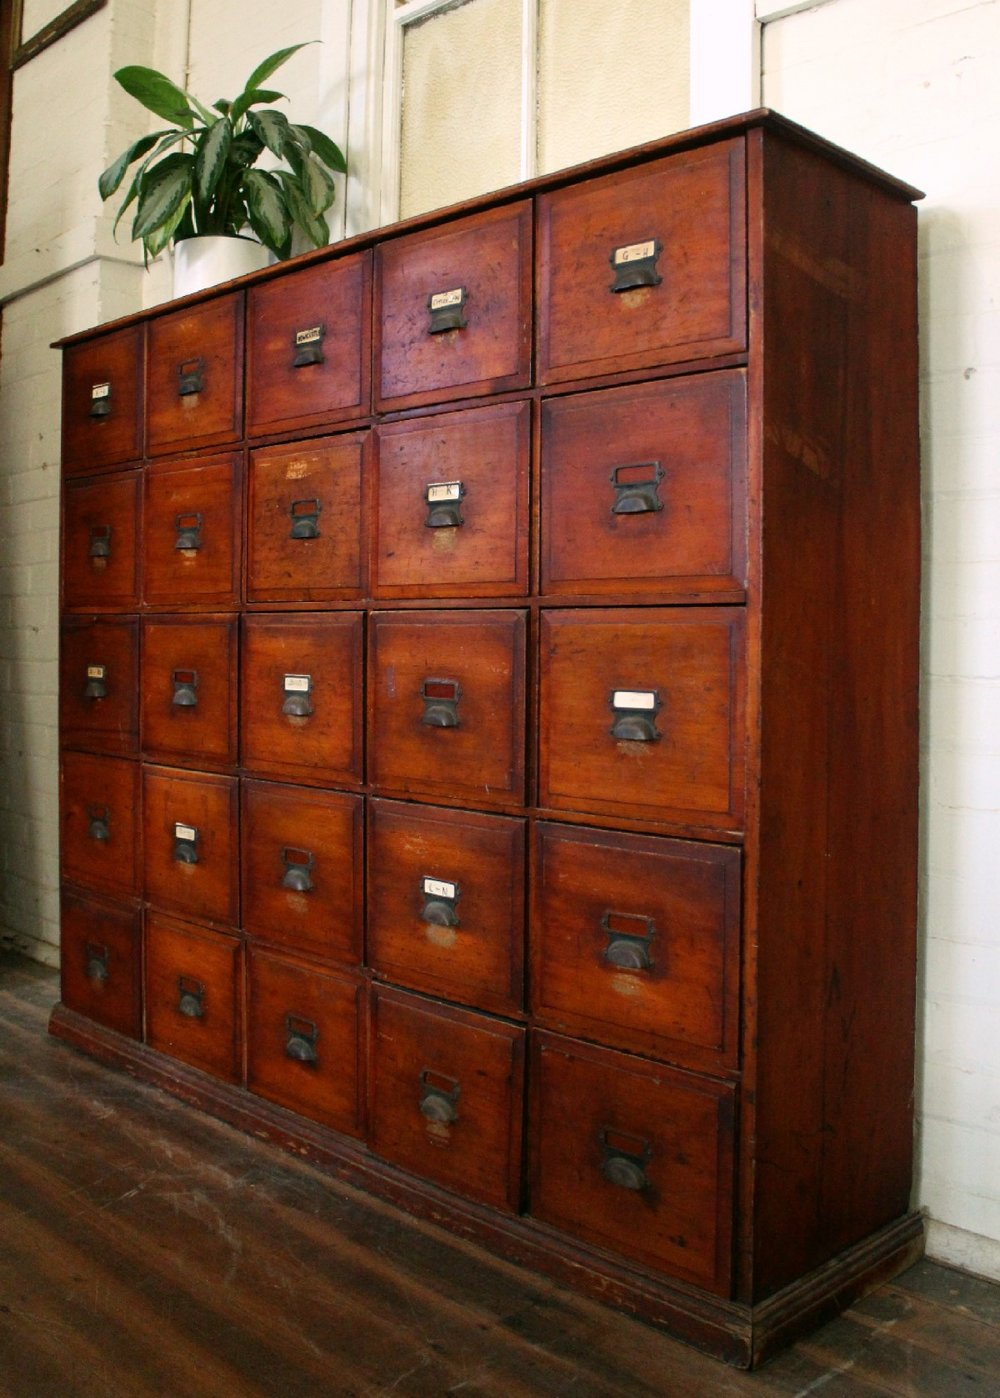 Vintage Filing Drawers.jpg